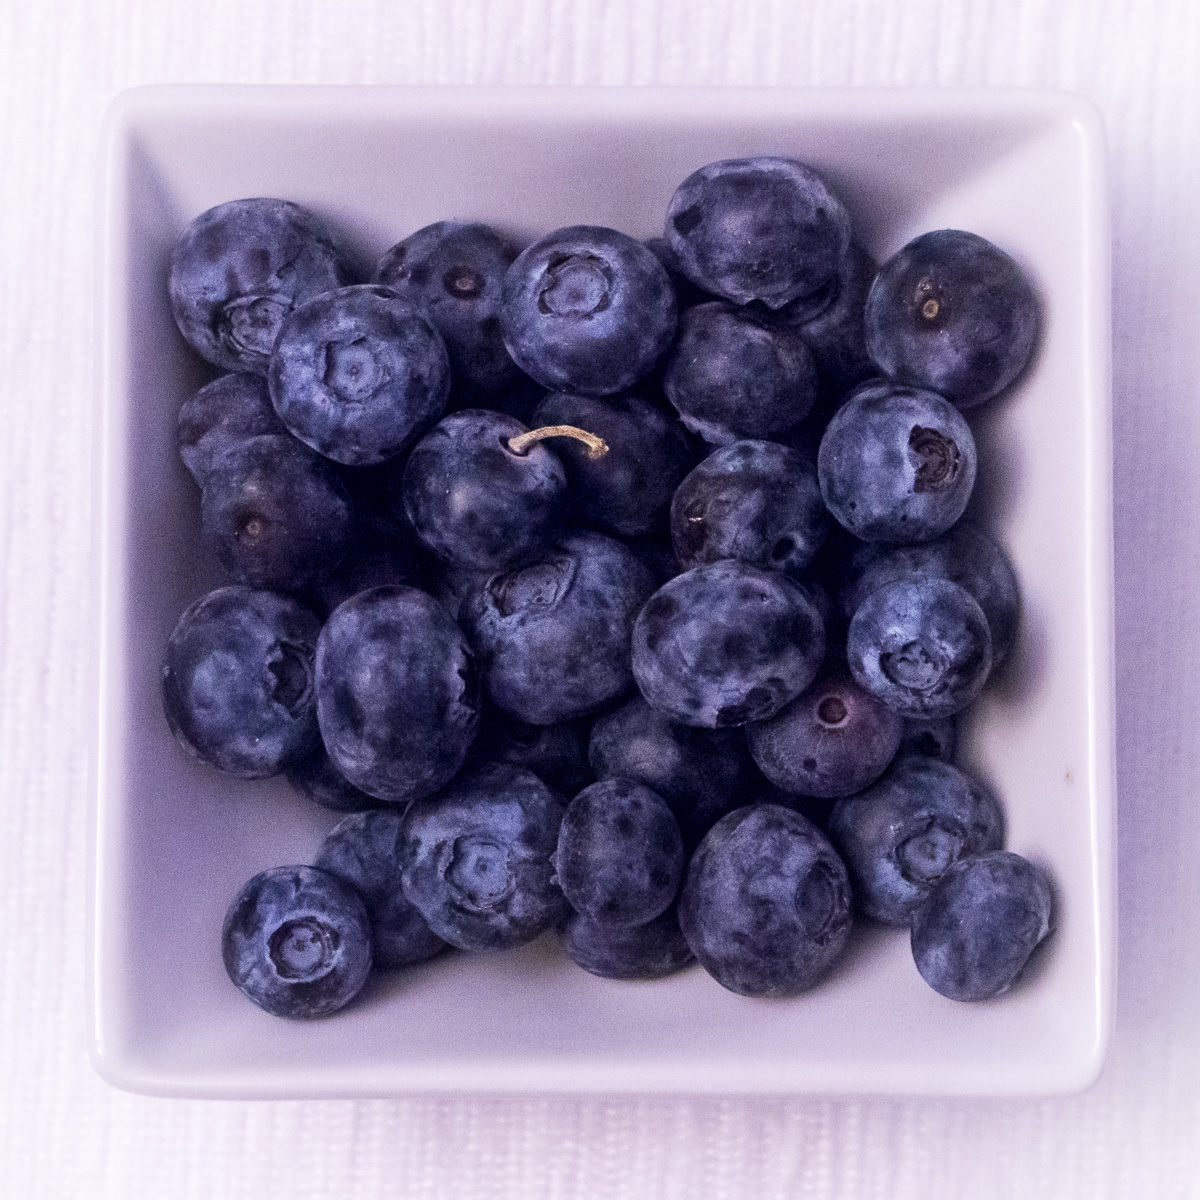 Study of Blueberries